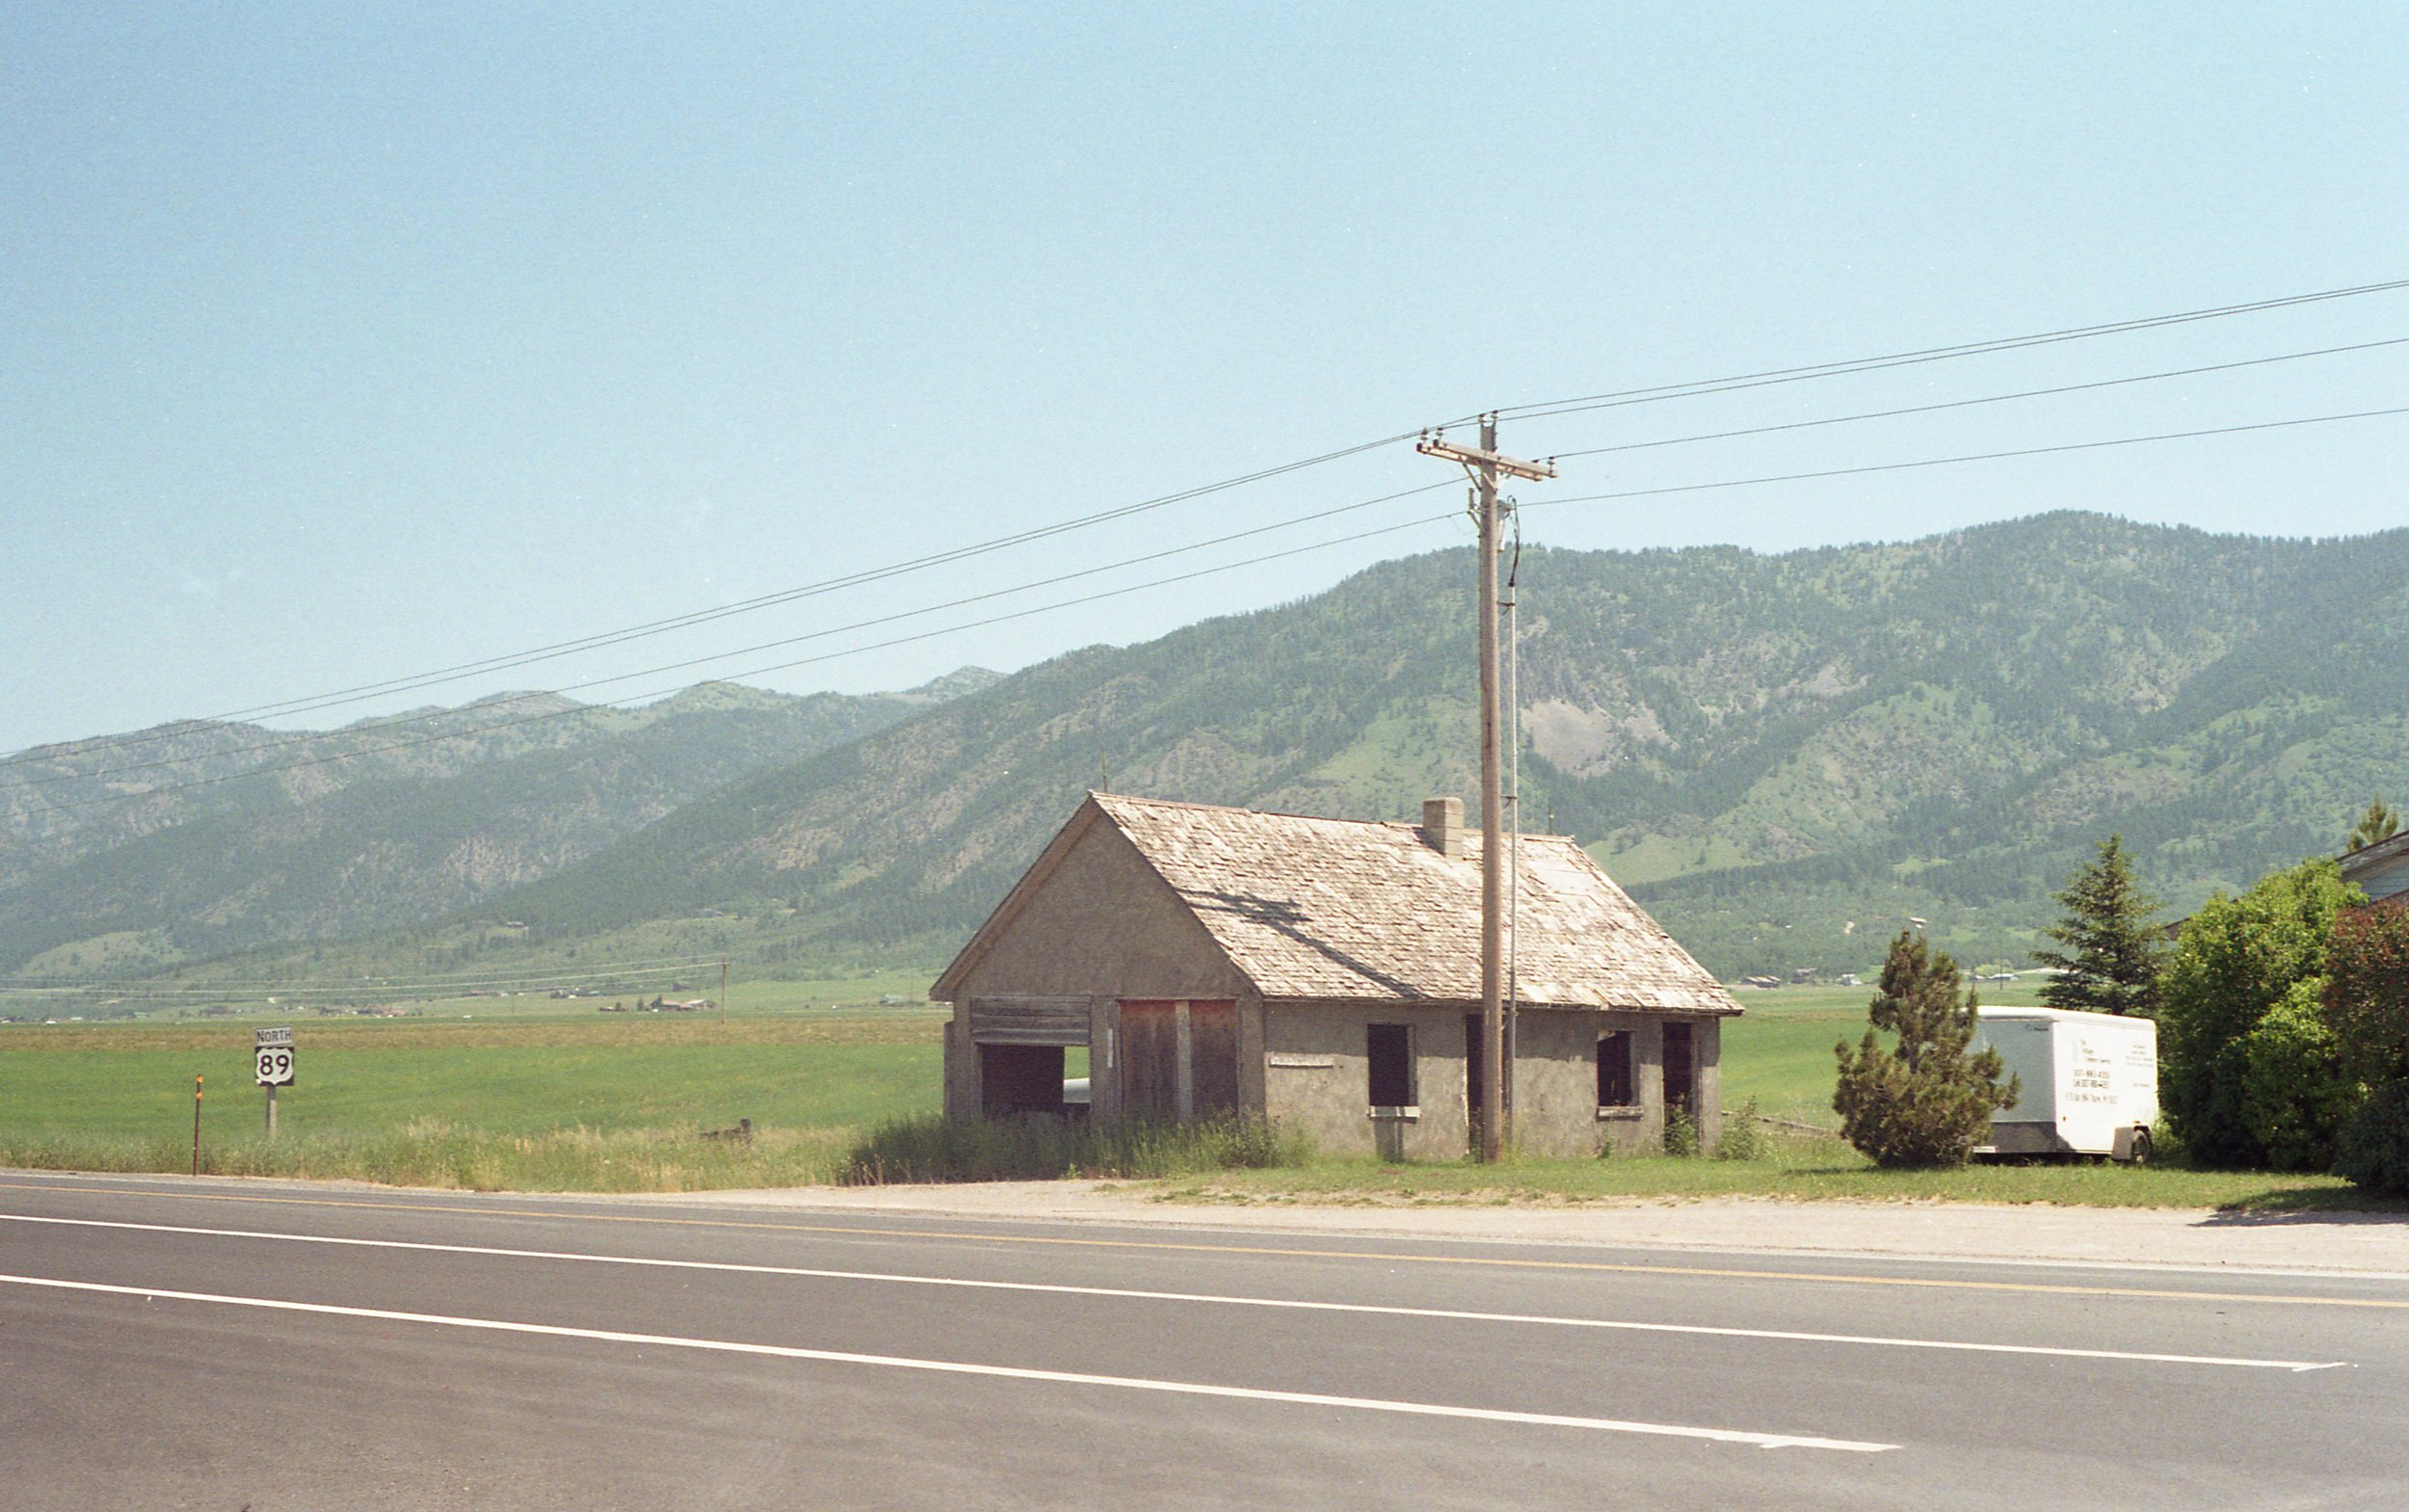 52-soda-springs-idaho-3.jpg